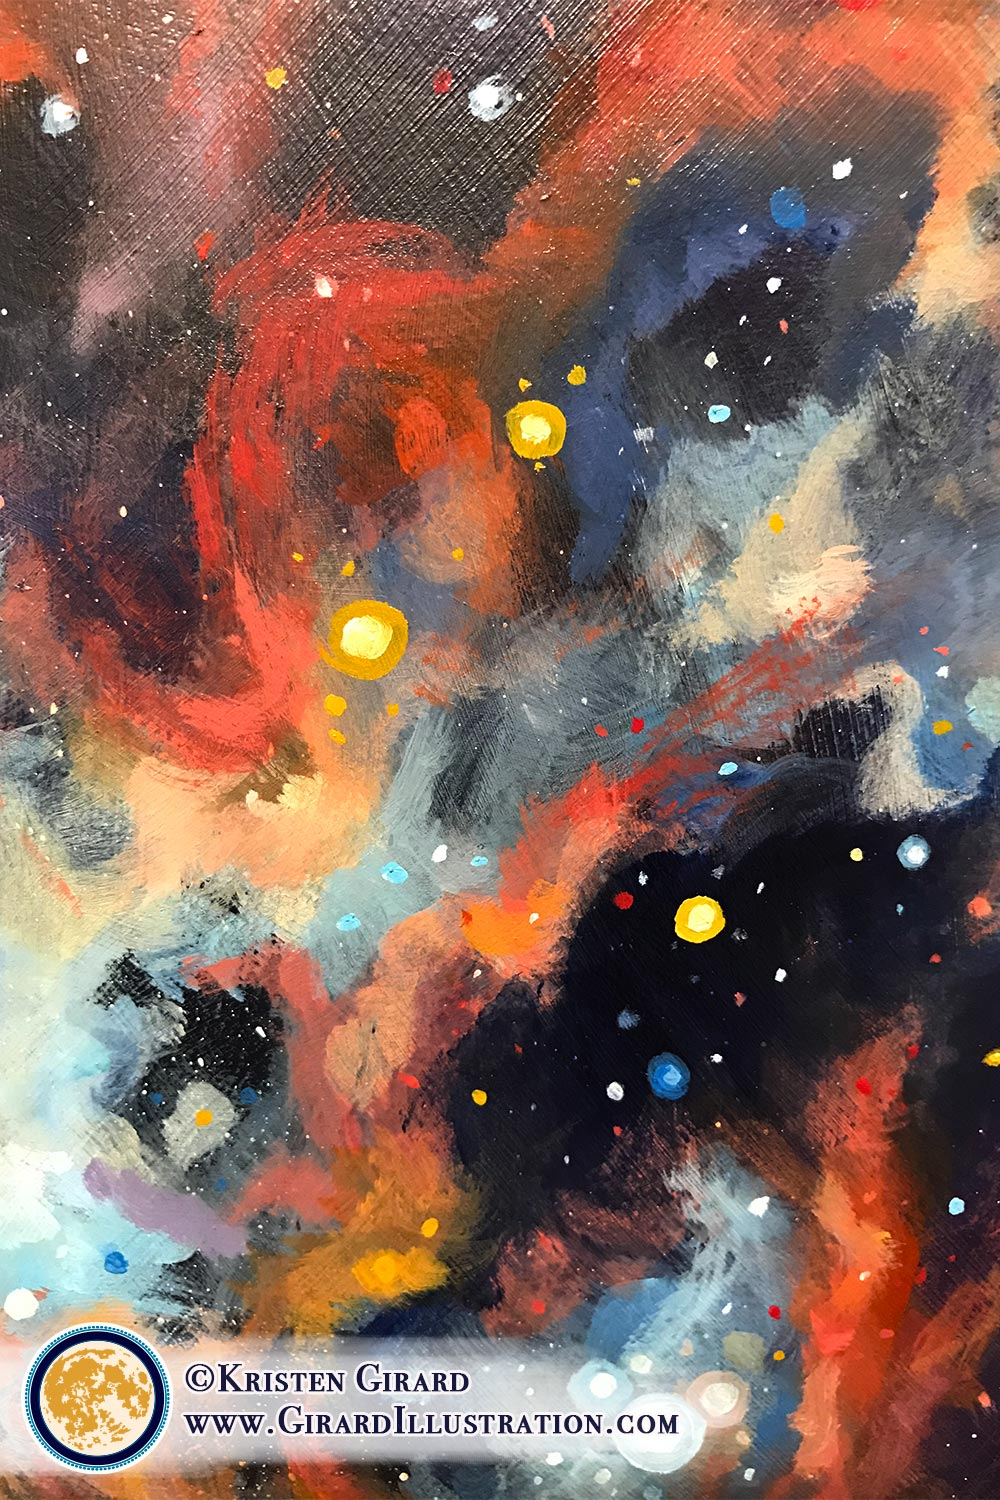 Colorful celestial artwork that helps you remember to not just speak your truth, but more importantly to LIVE it. The swirls of stars and bright gas nebulas within celestial paintings by visionary artist Kristen Girard help you express your truth. © Kristen Girard.